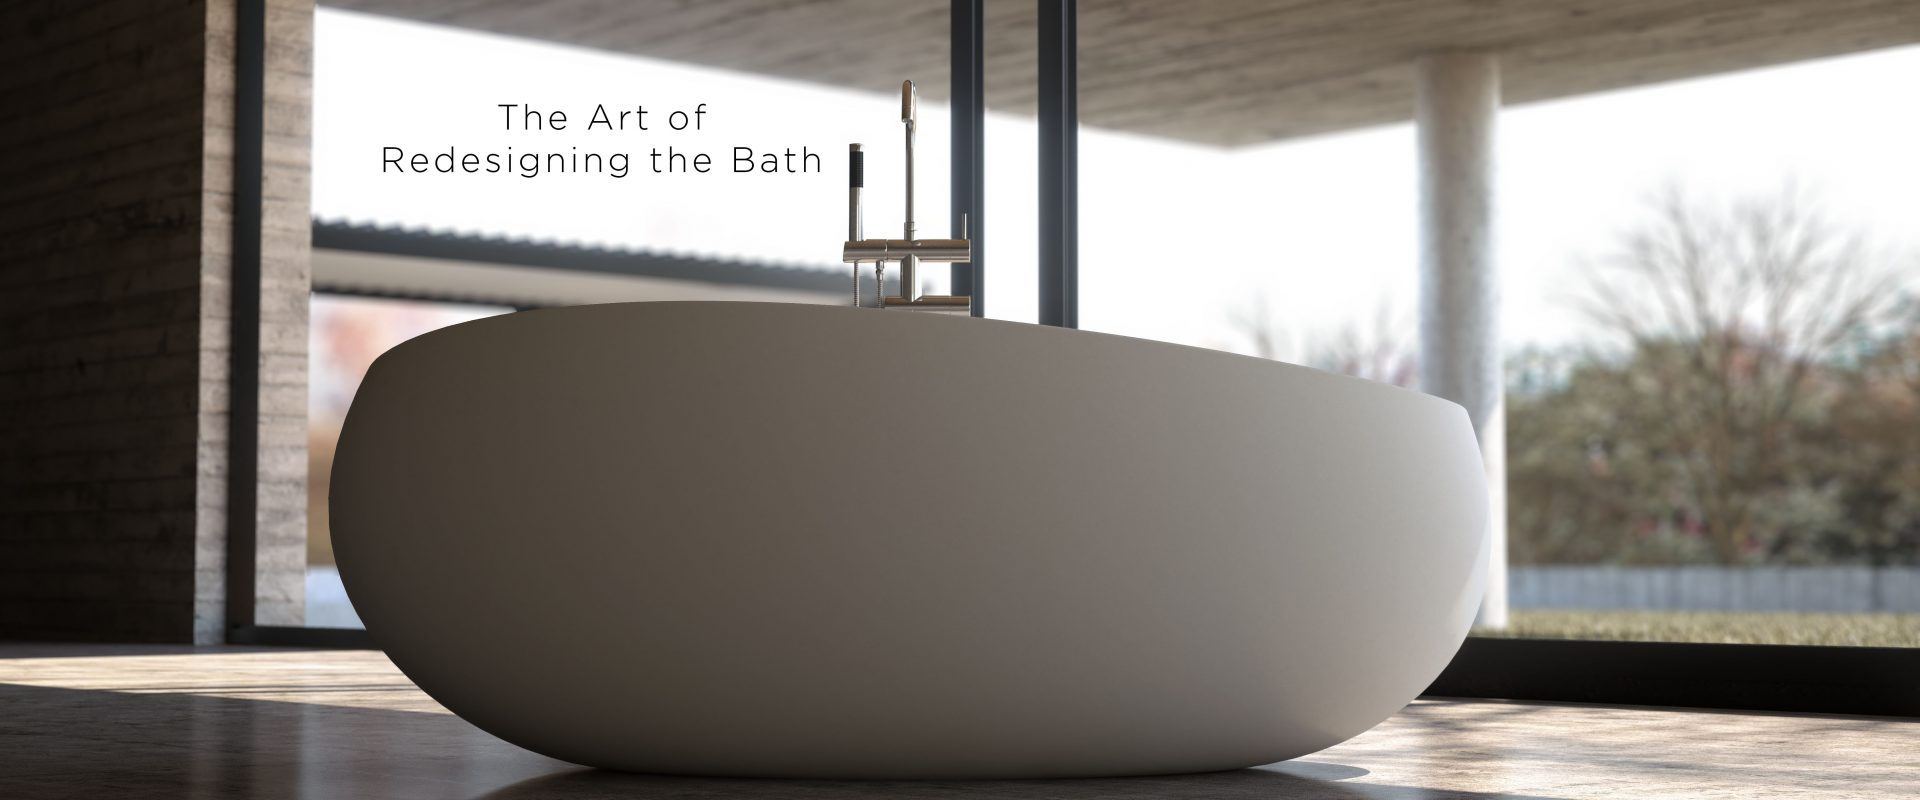 Madison Bath Tub - Art of Redesigning the Bath